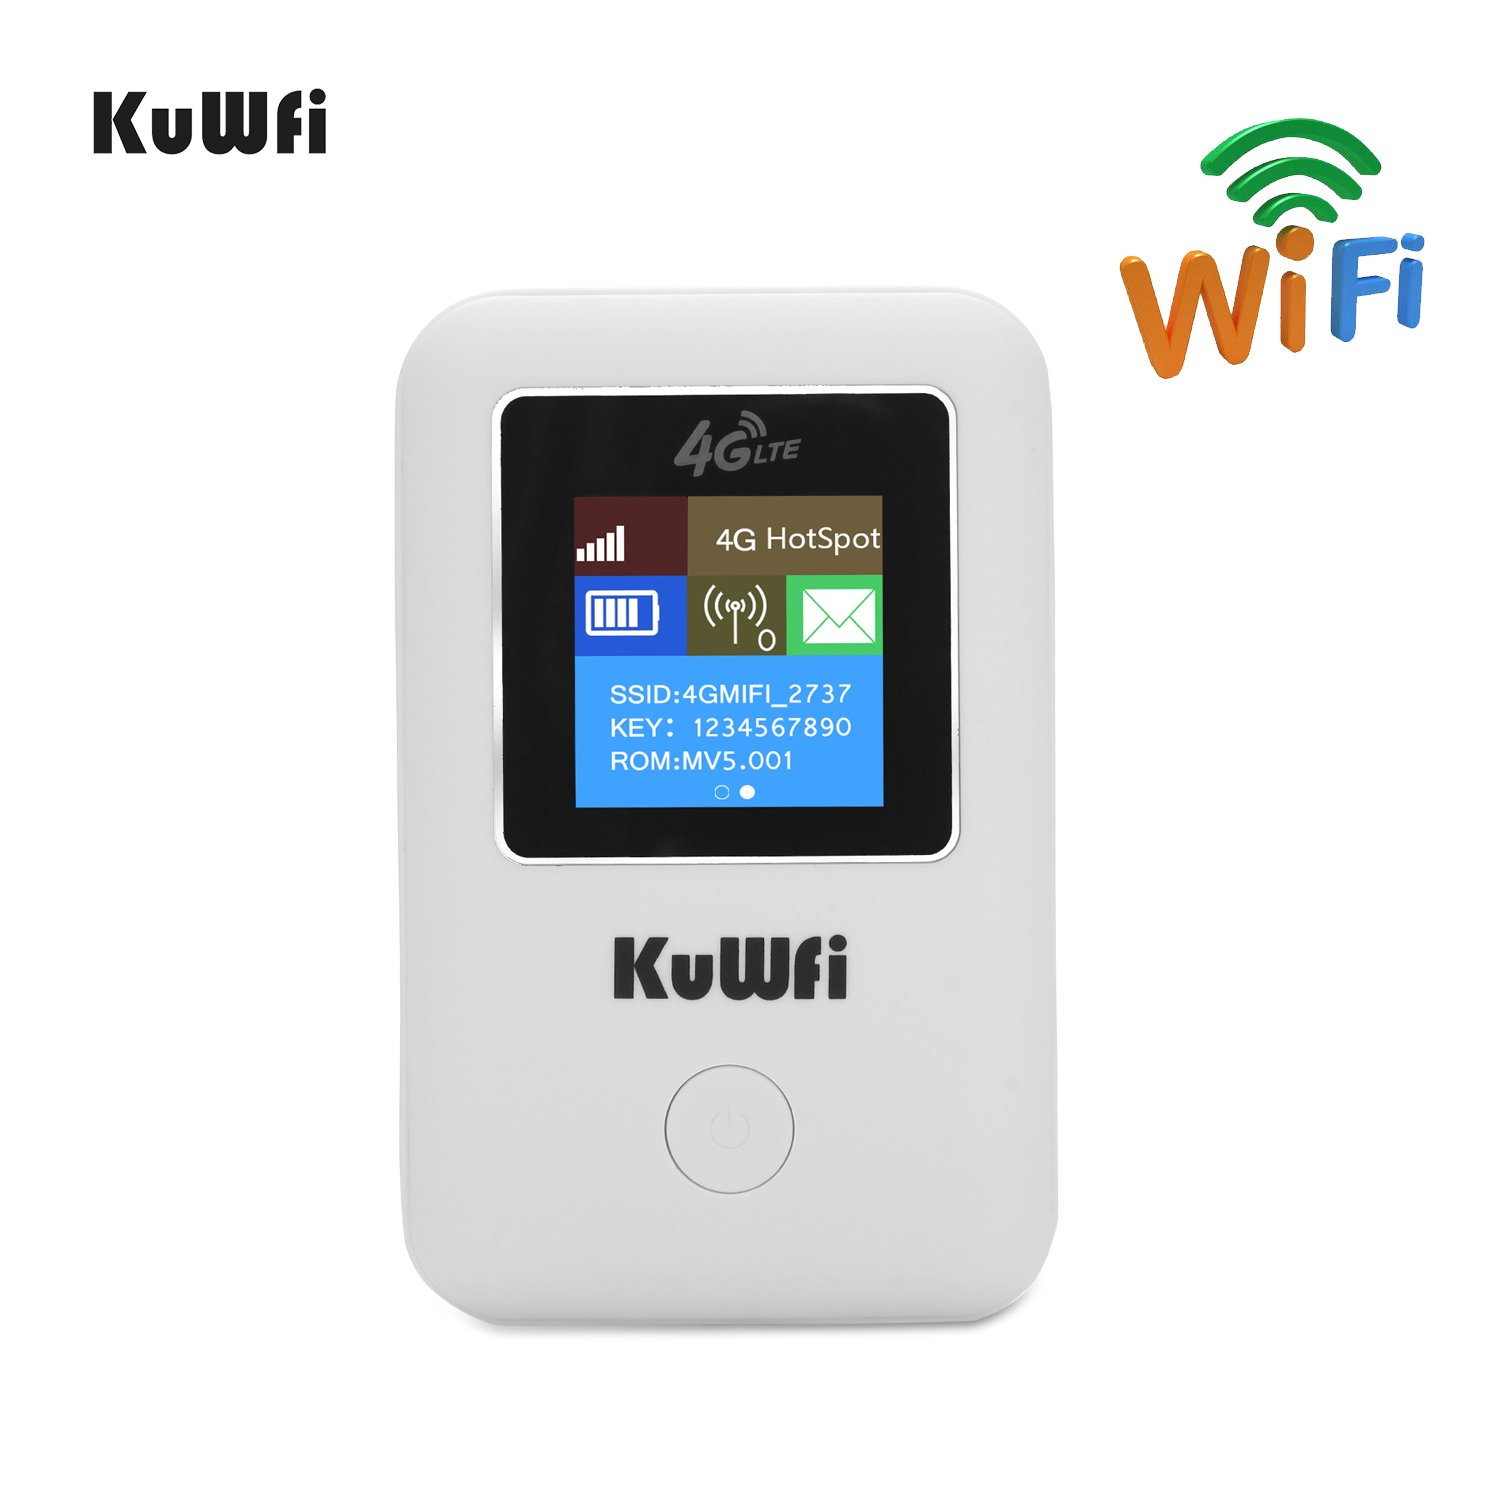 4G WiFi Router,KuWFi Unlocked Pocket 3G 4G wifi router with sim card slot Support LTE FDD B1/B3/B5 Support Telus Canada sim card USA AT&T Caribbean,Europe,Asia, Middle East & Africa -LCD Display MF902